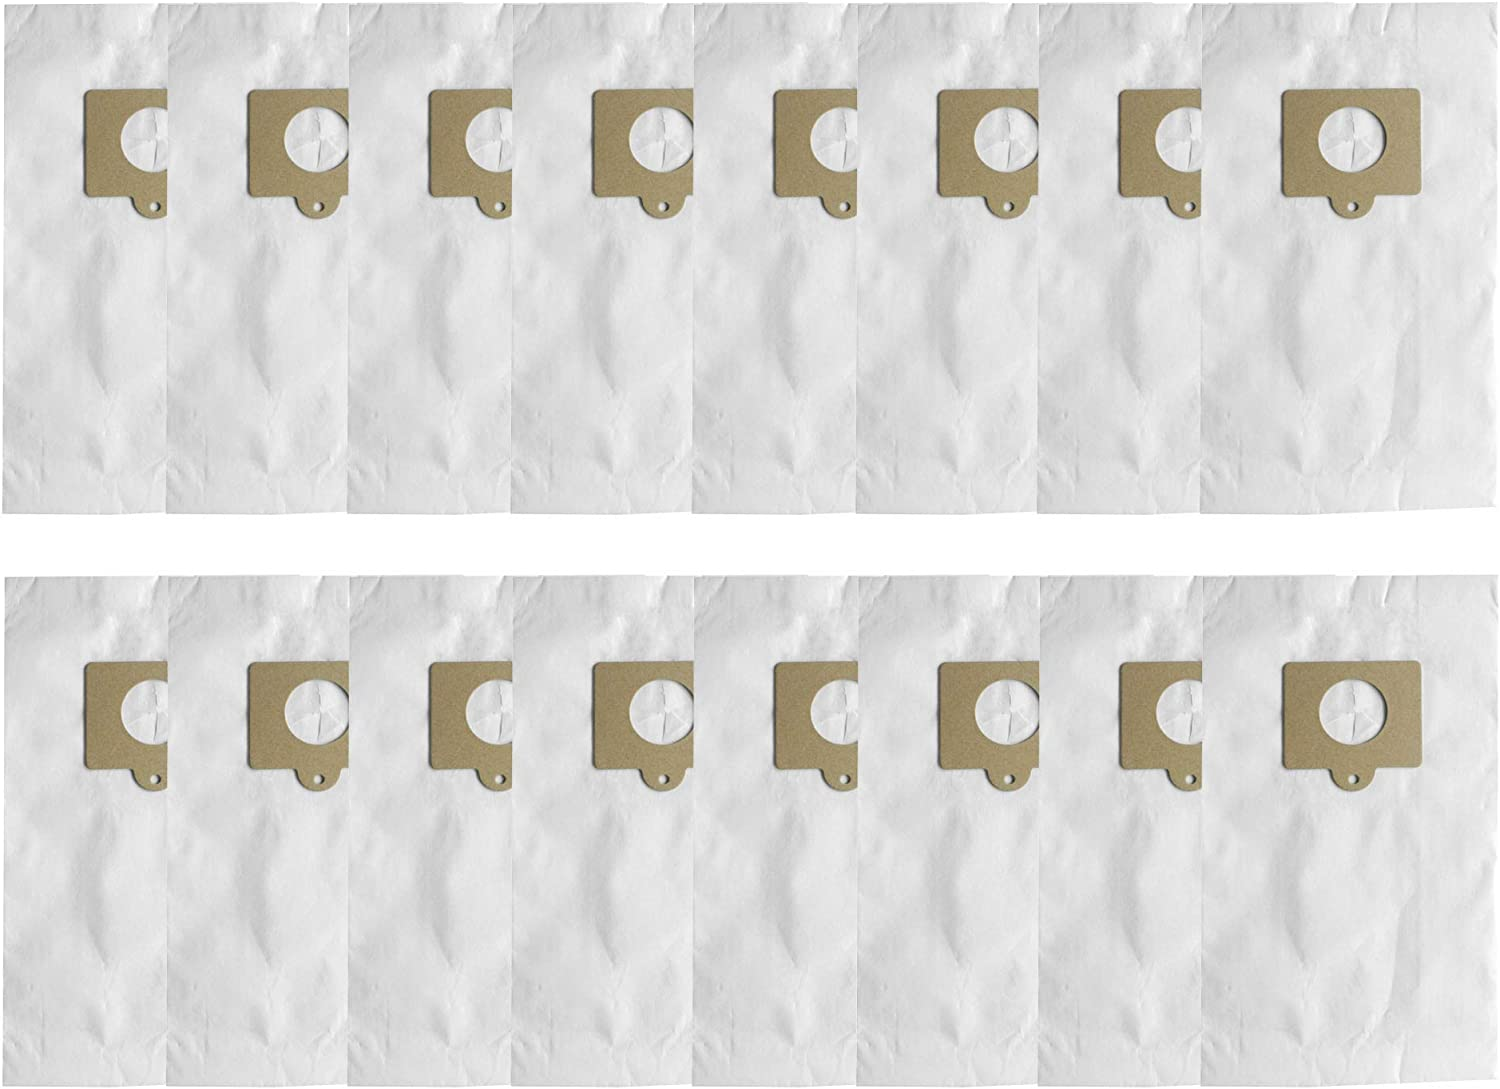 Aliddle 16 Pack Canister Vacuum Bags for Kenmore C/Q, 54321, 50104. Also Fits Panasonic C-5&C-18